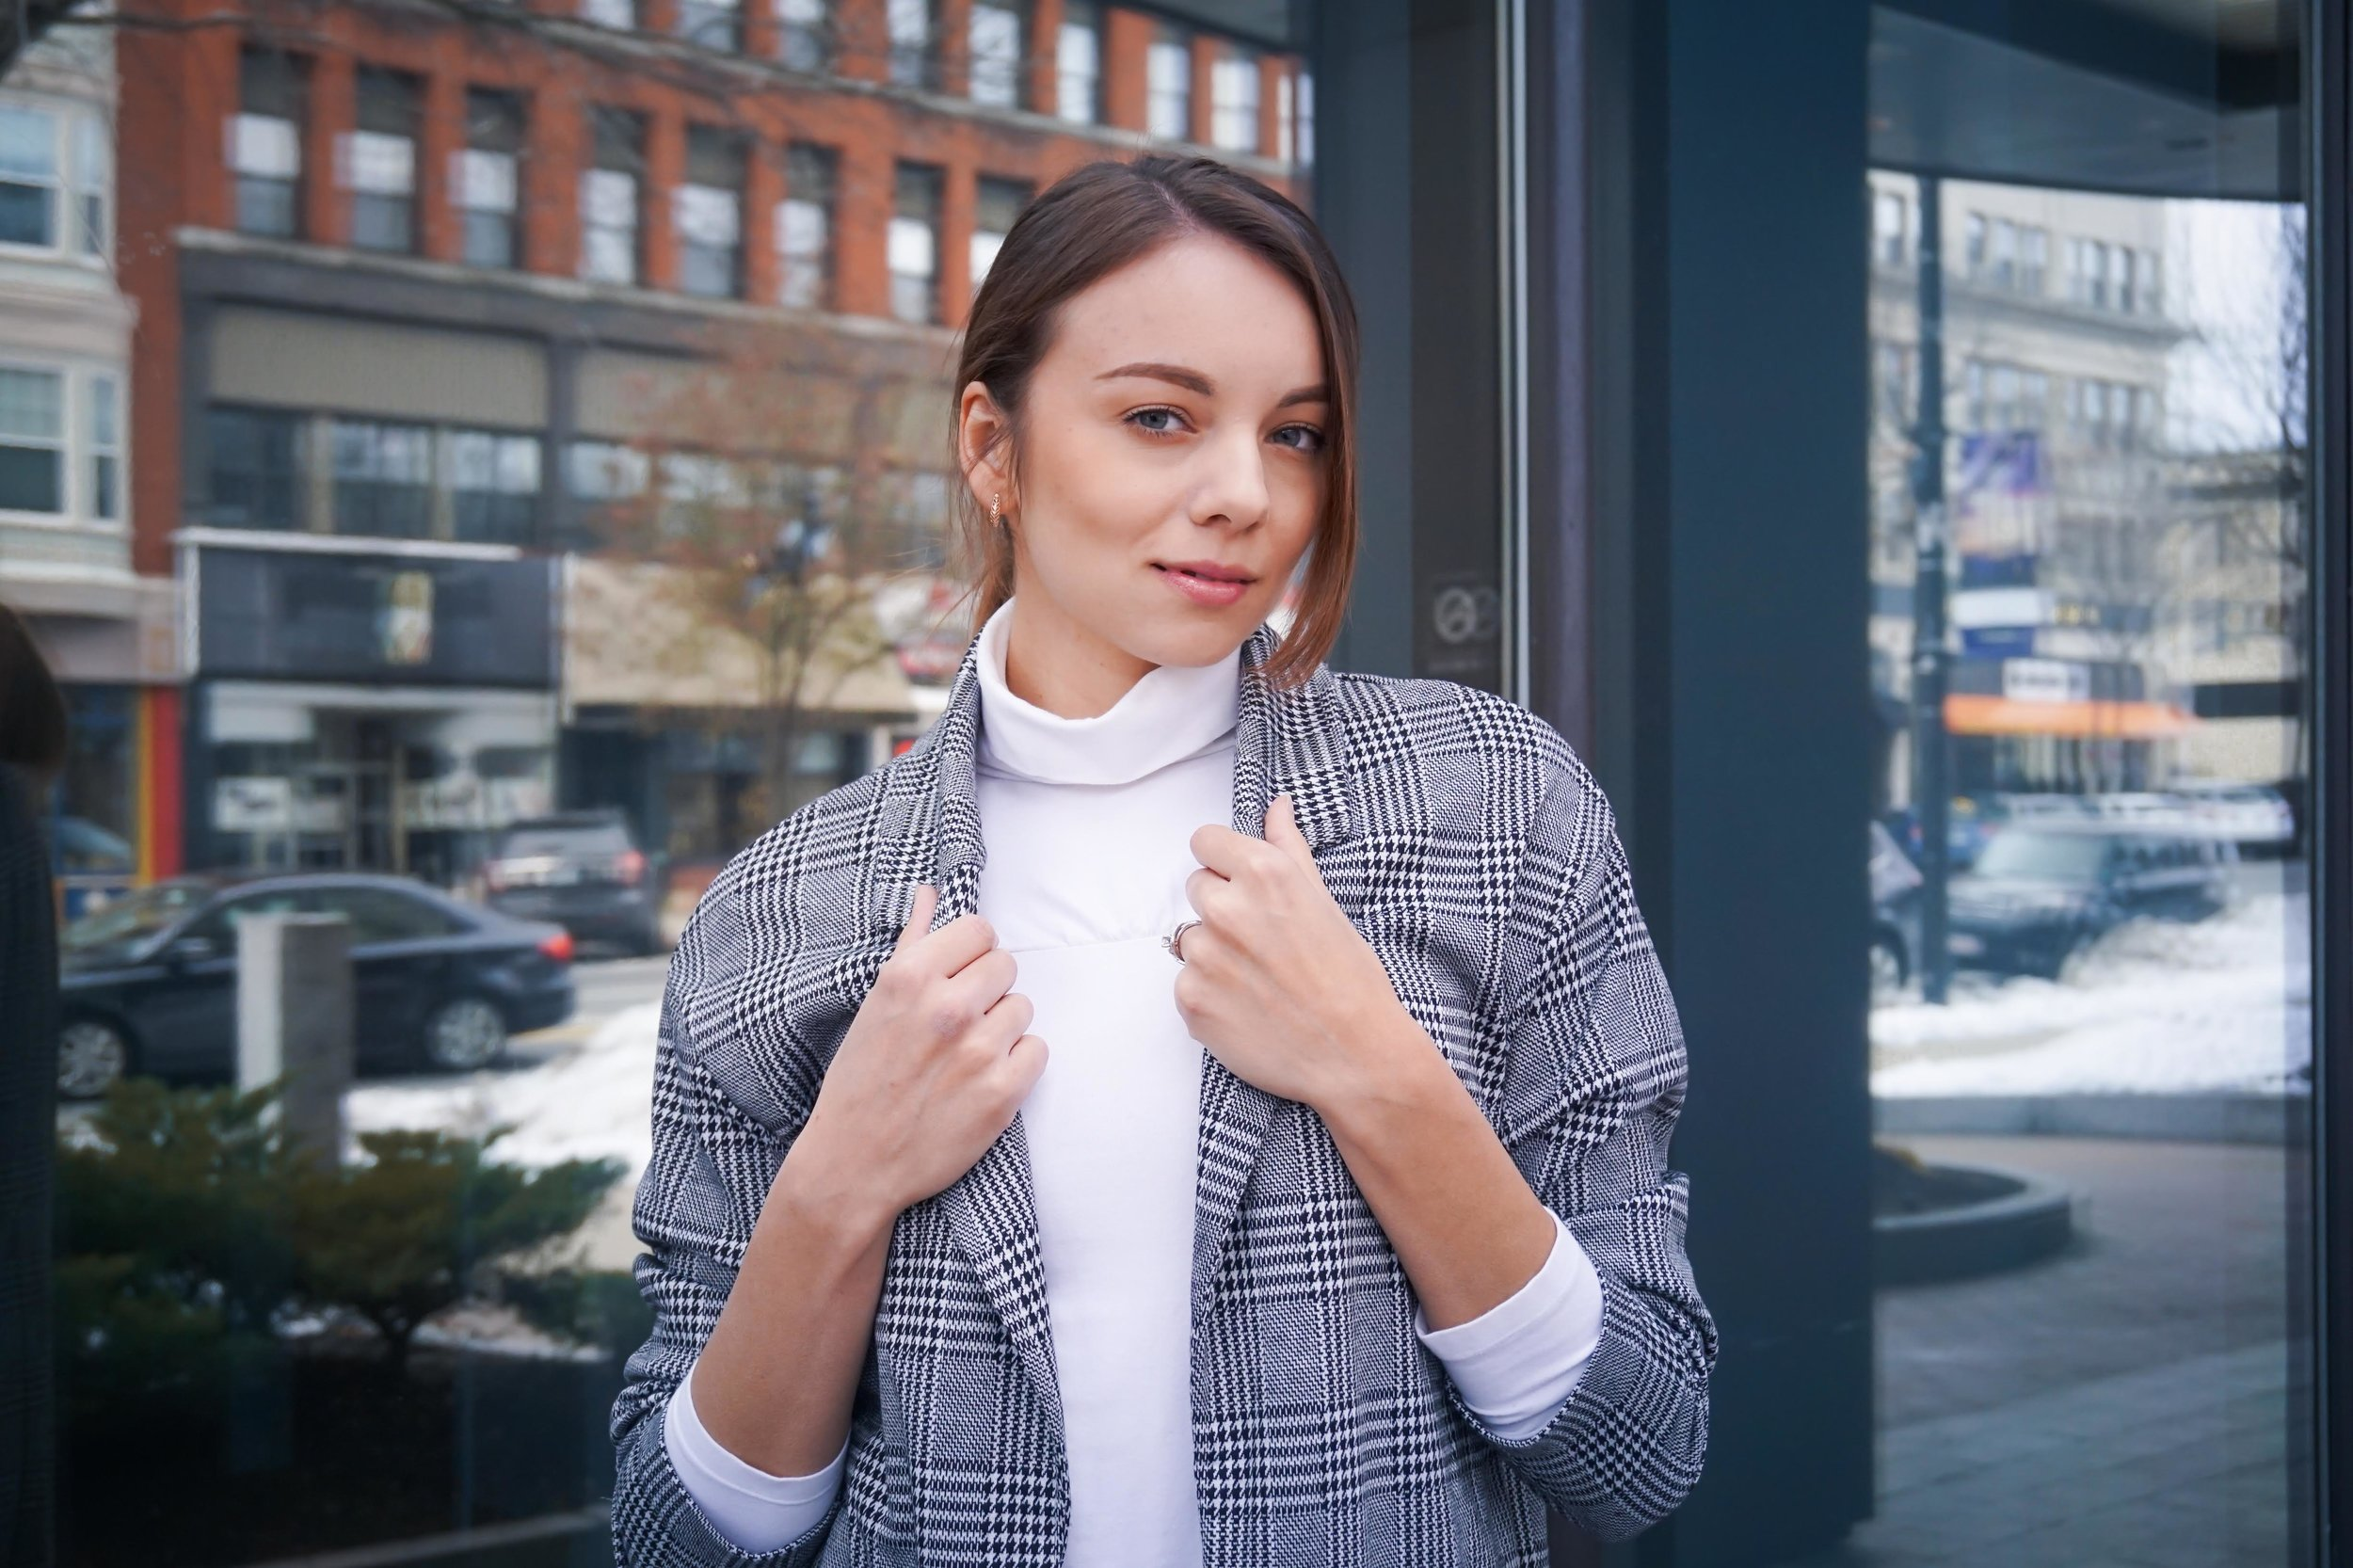 A portrait of a fashion blogger wearing a white turtleneck and houndstooth blazer.